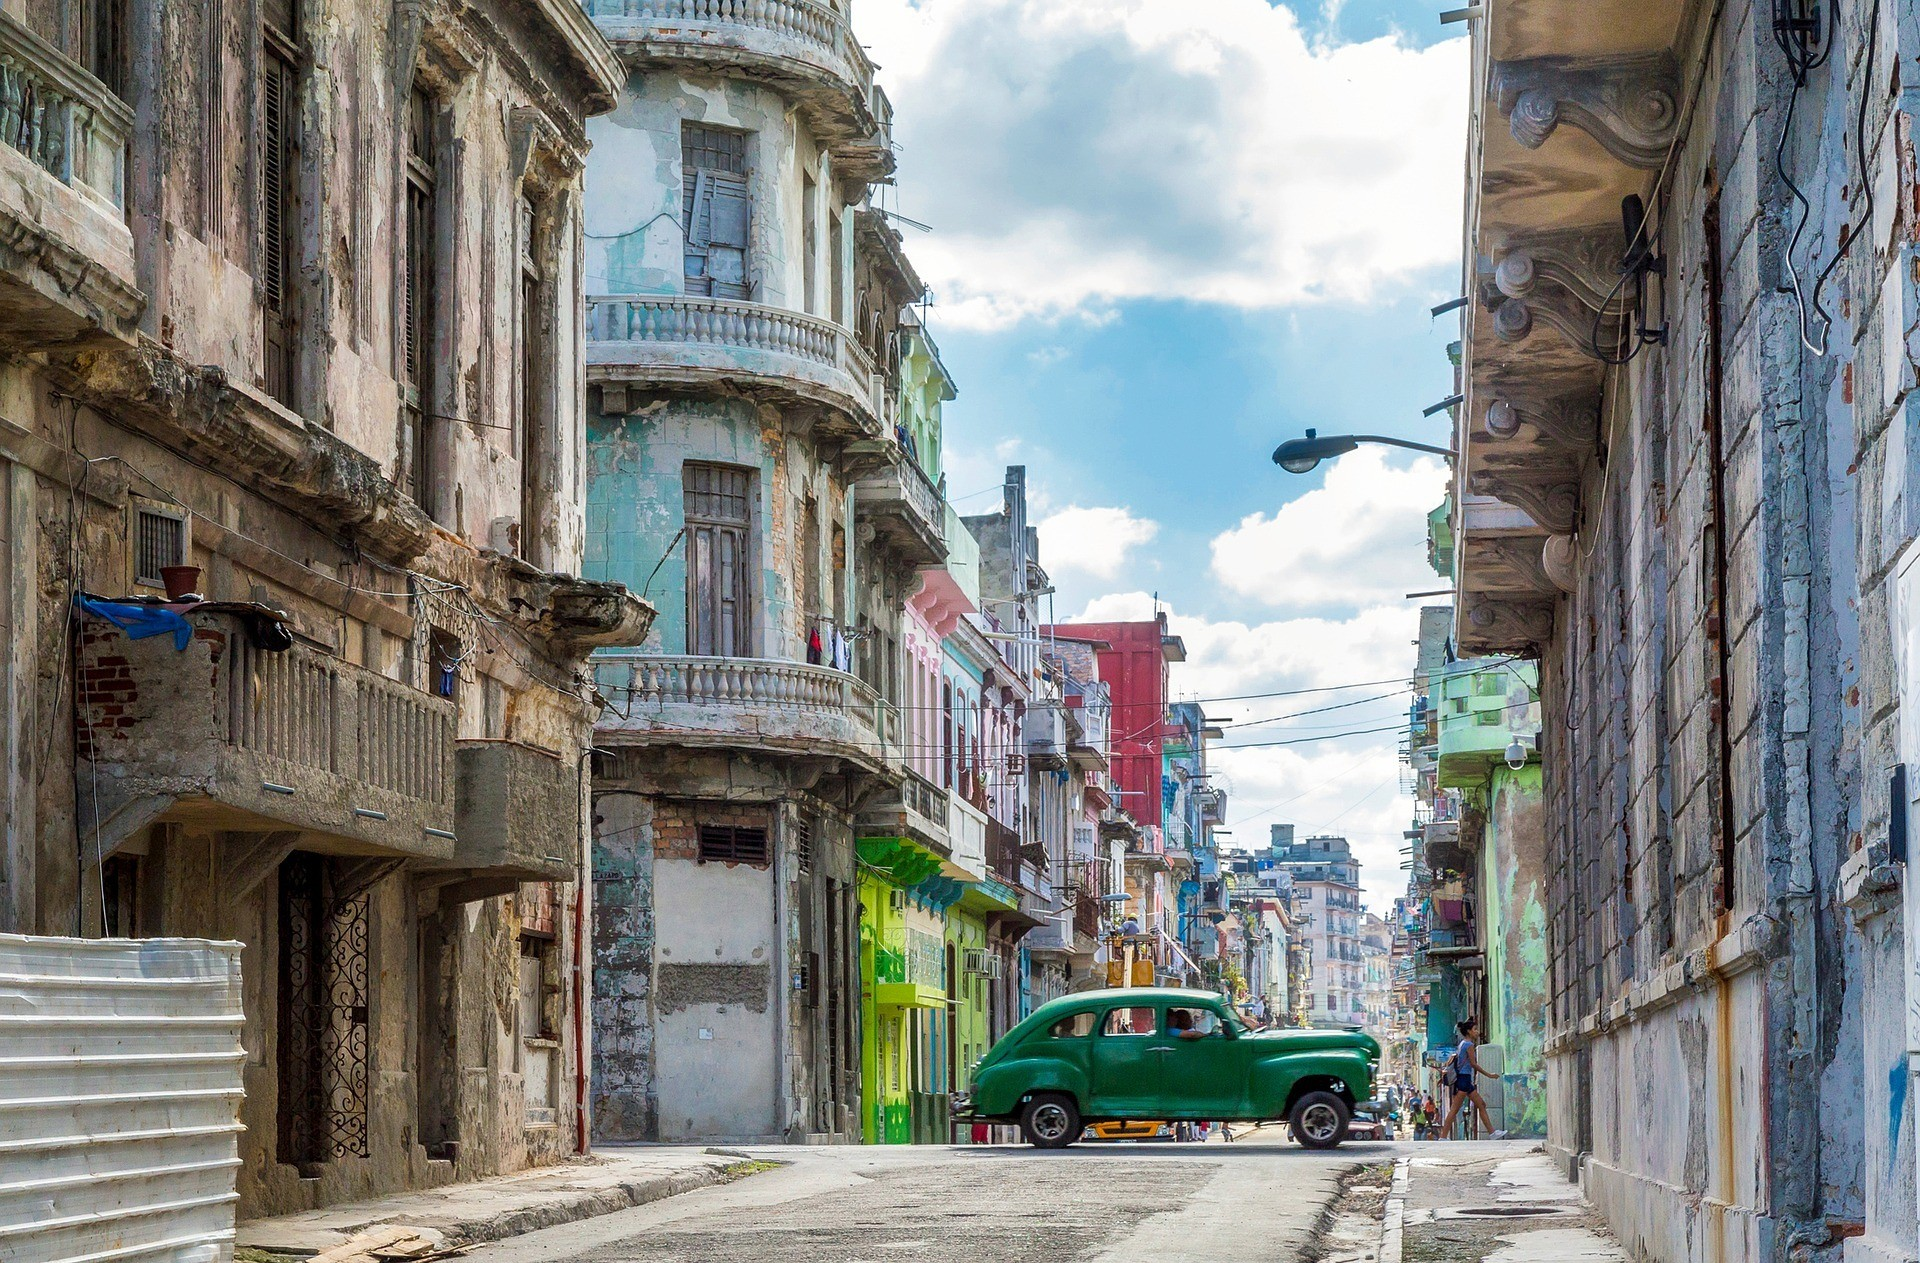 Old-timey car in a street in Havana - the capital of Cuba